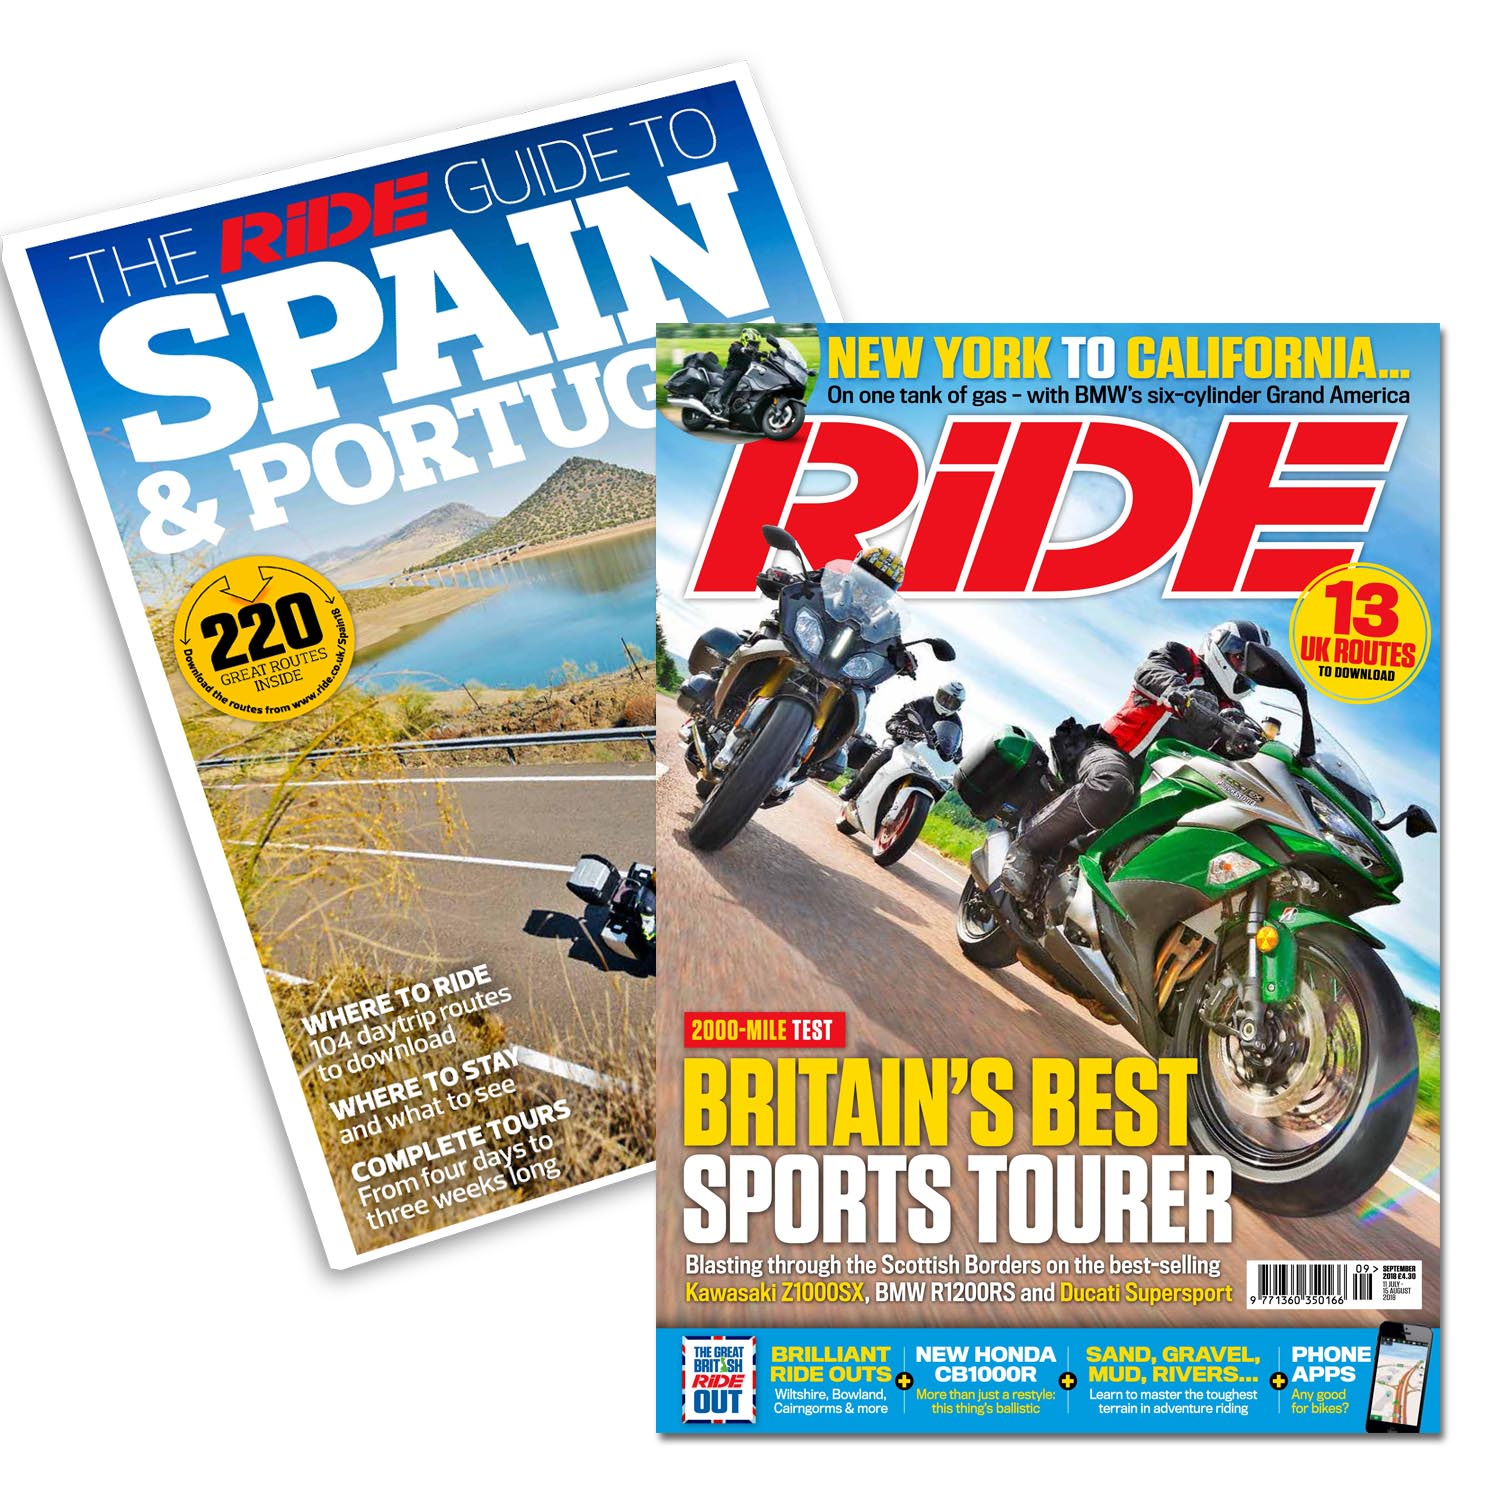 RiDE September issue has a free RiDE Guide to Spain and Portugal